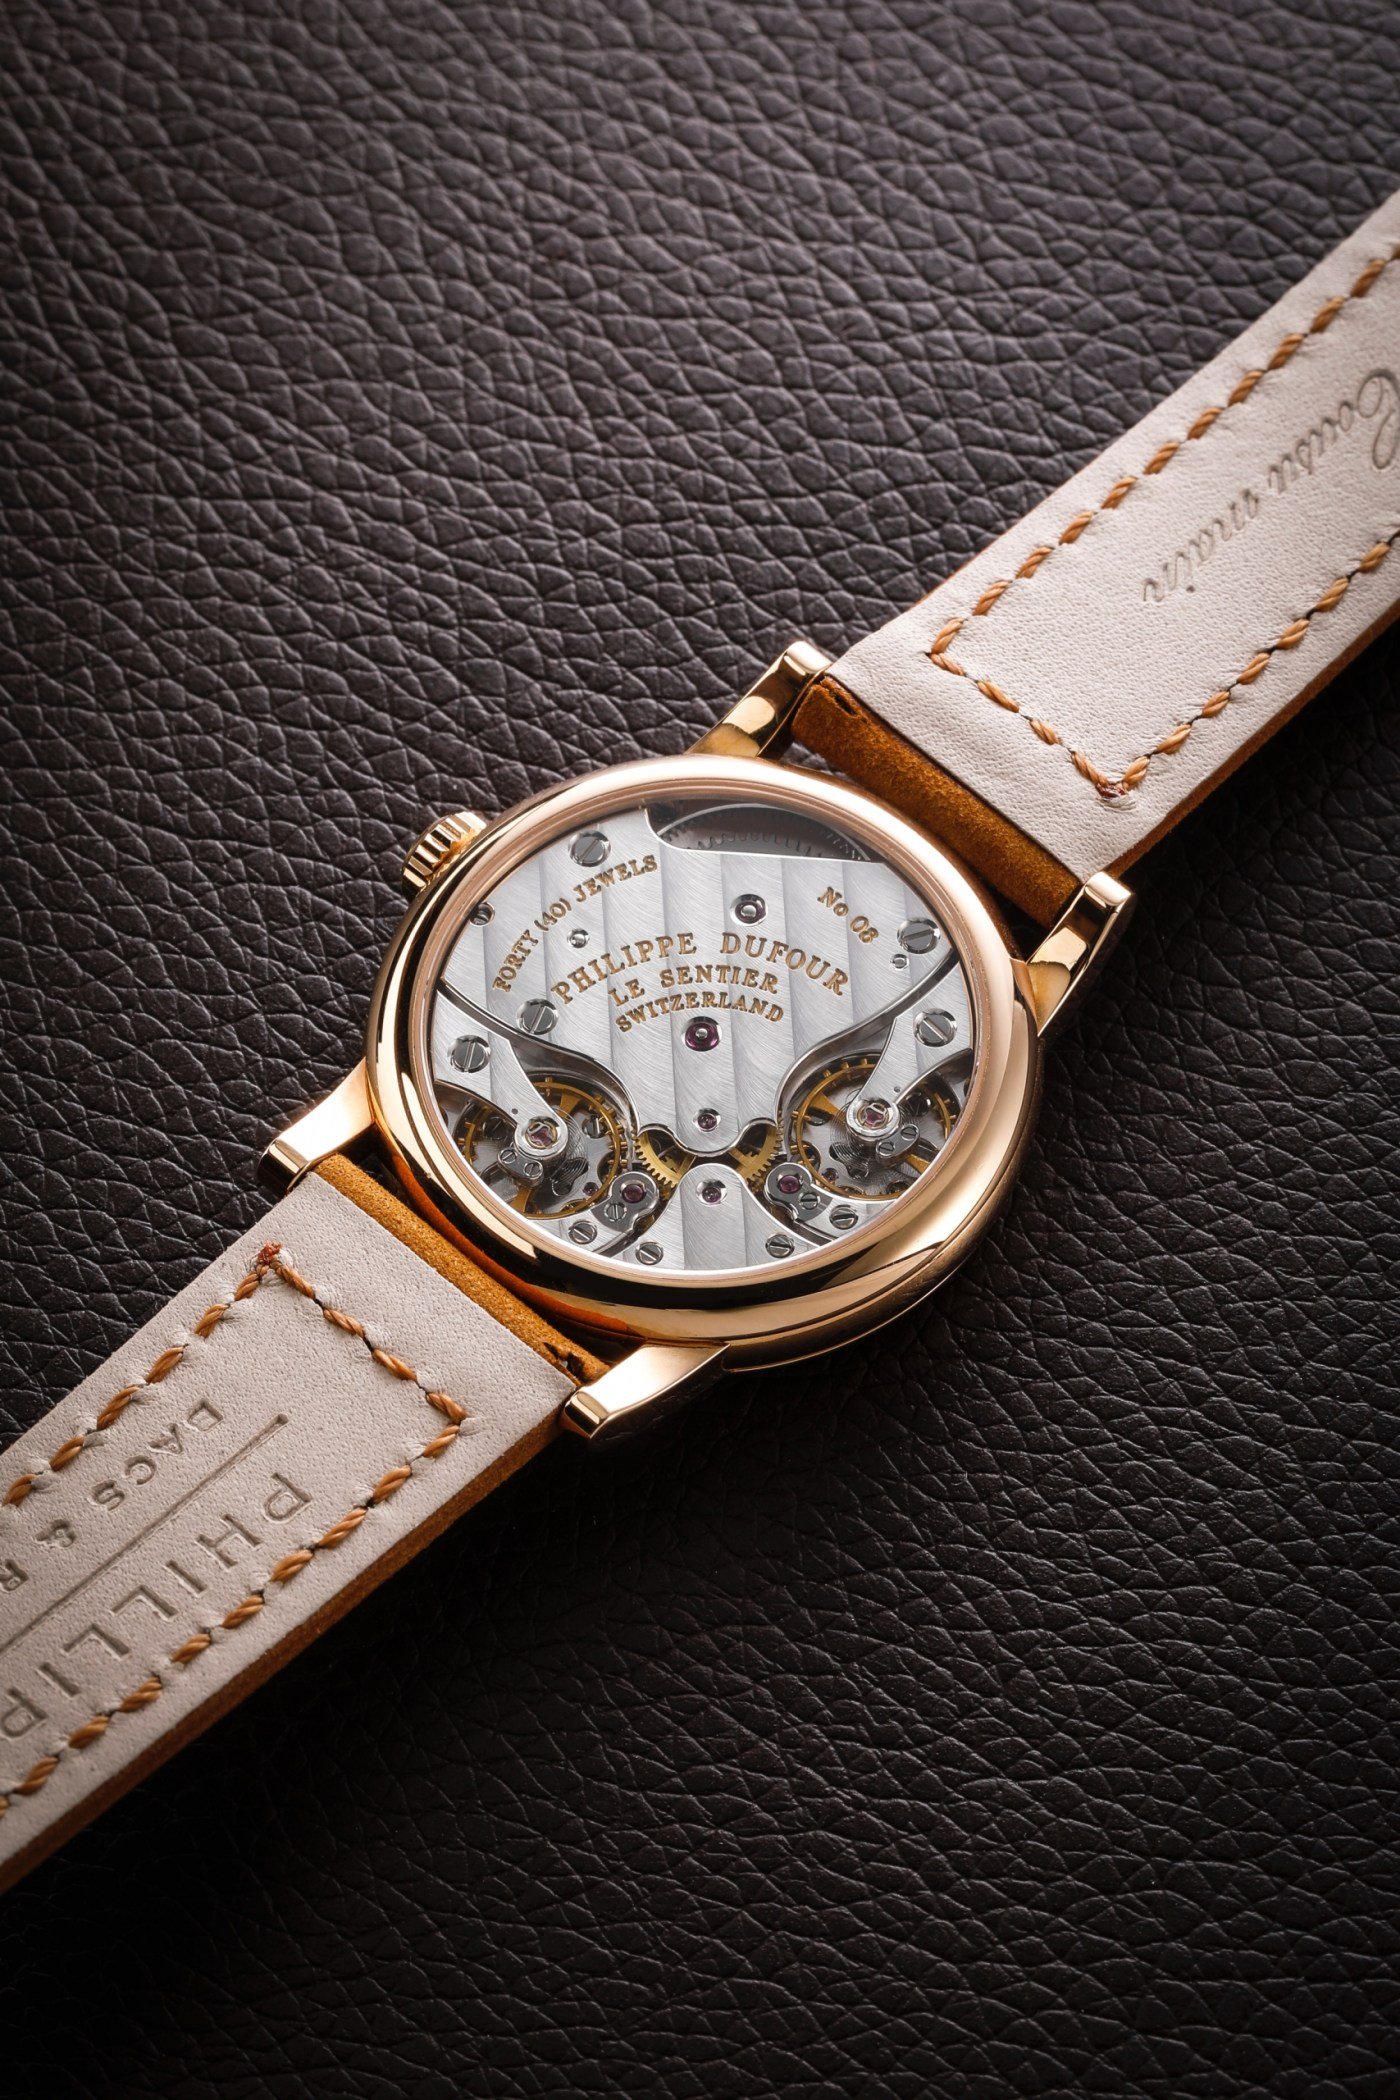 Philippe Dufour Duality caseback